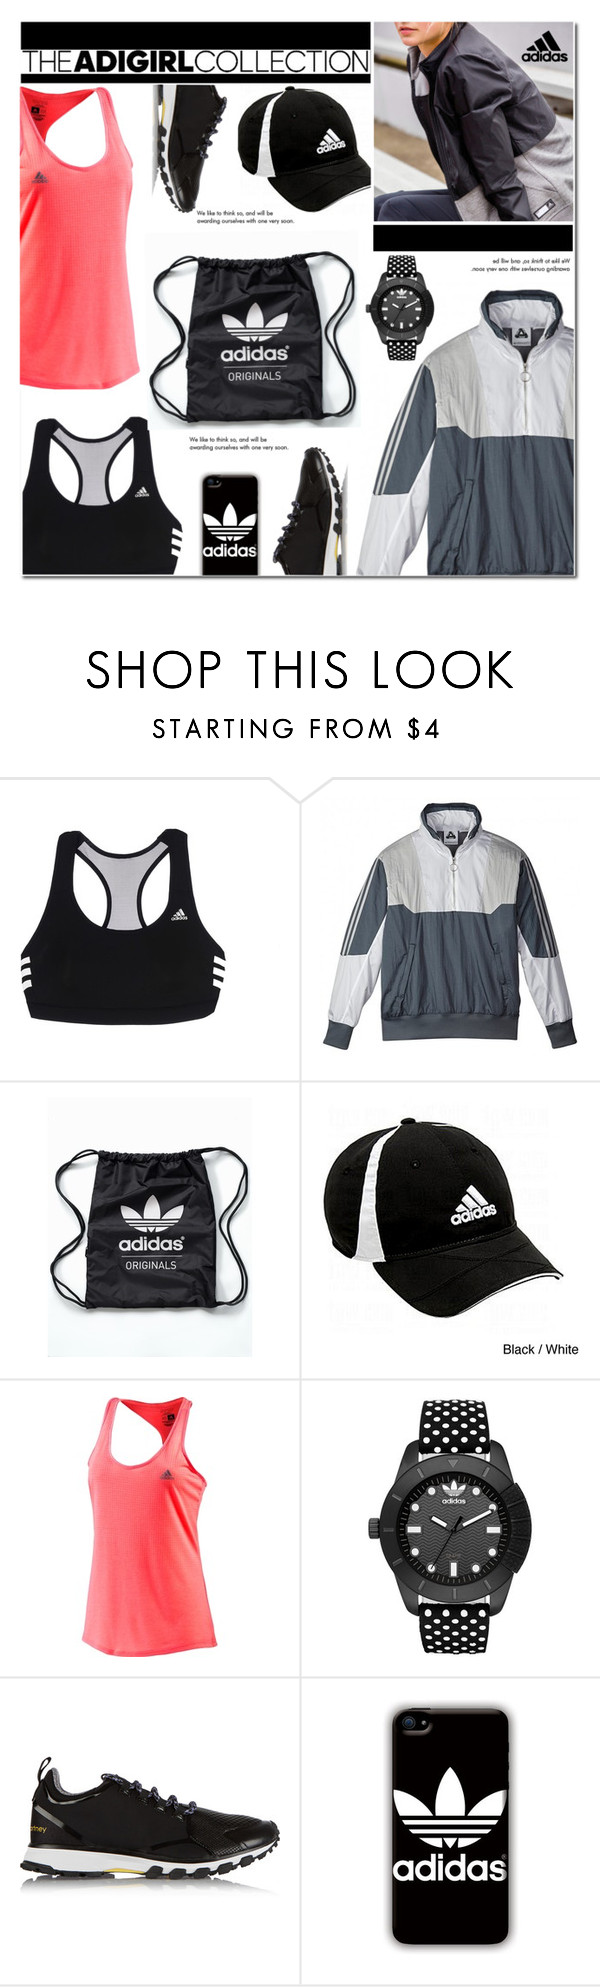 """""""Adidas"""" by cly88 ❤ liked on Polyvore featuring adidas, adidas Originals, Tiffany & Co. and adigirl"""